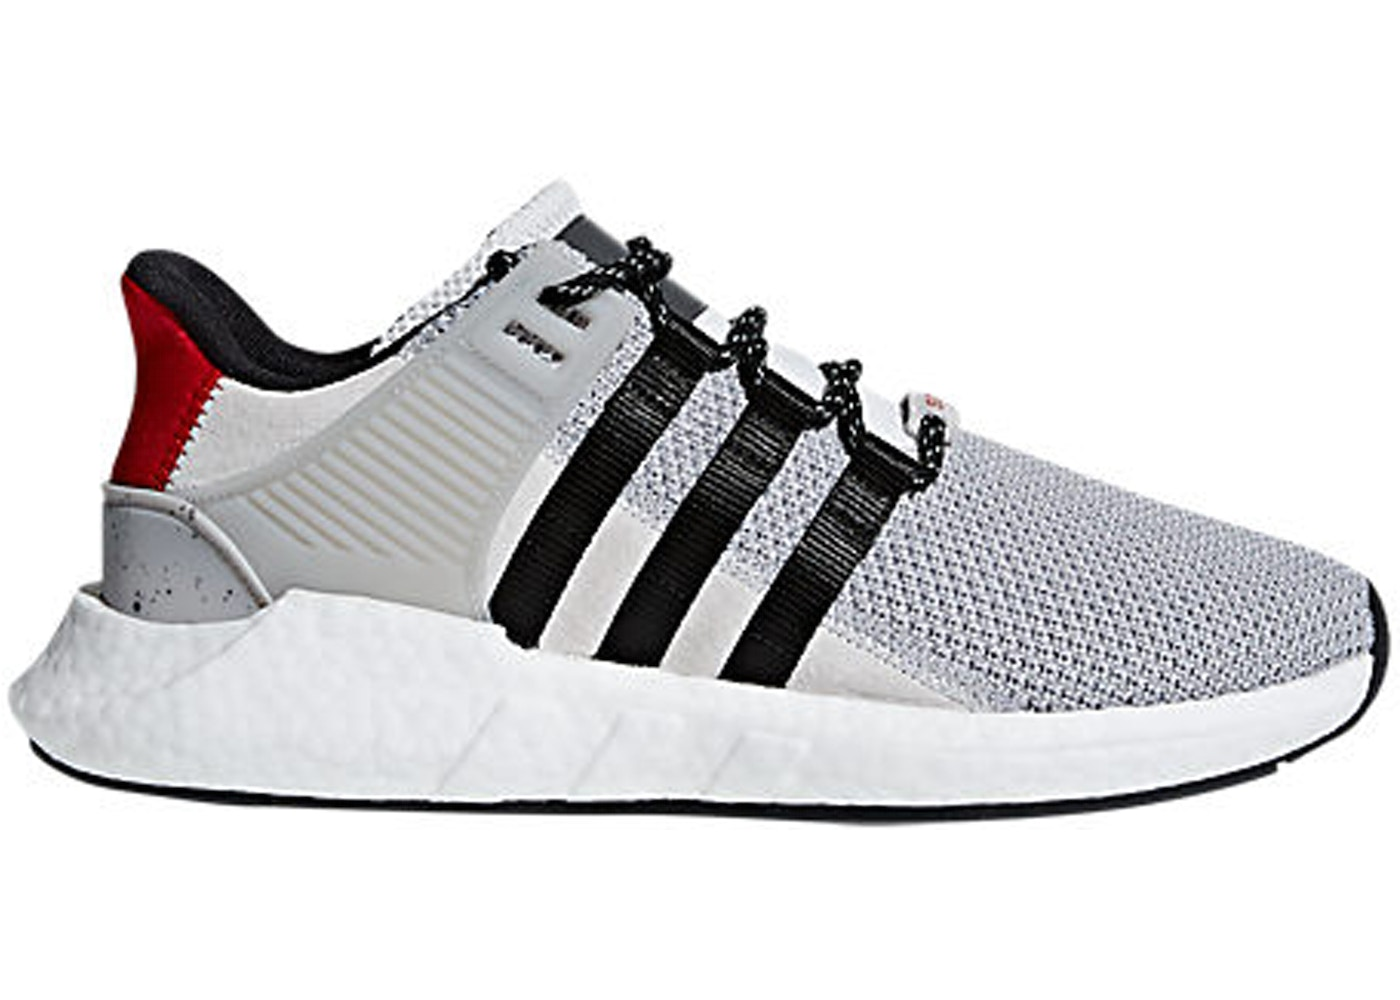 on sale 0e8b5 e7514 adidas EQT Support 93/17 Grey Black Scarlet